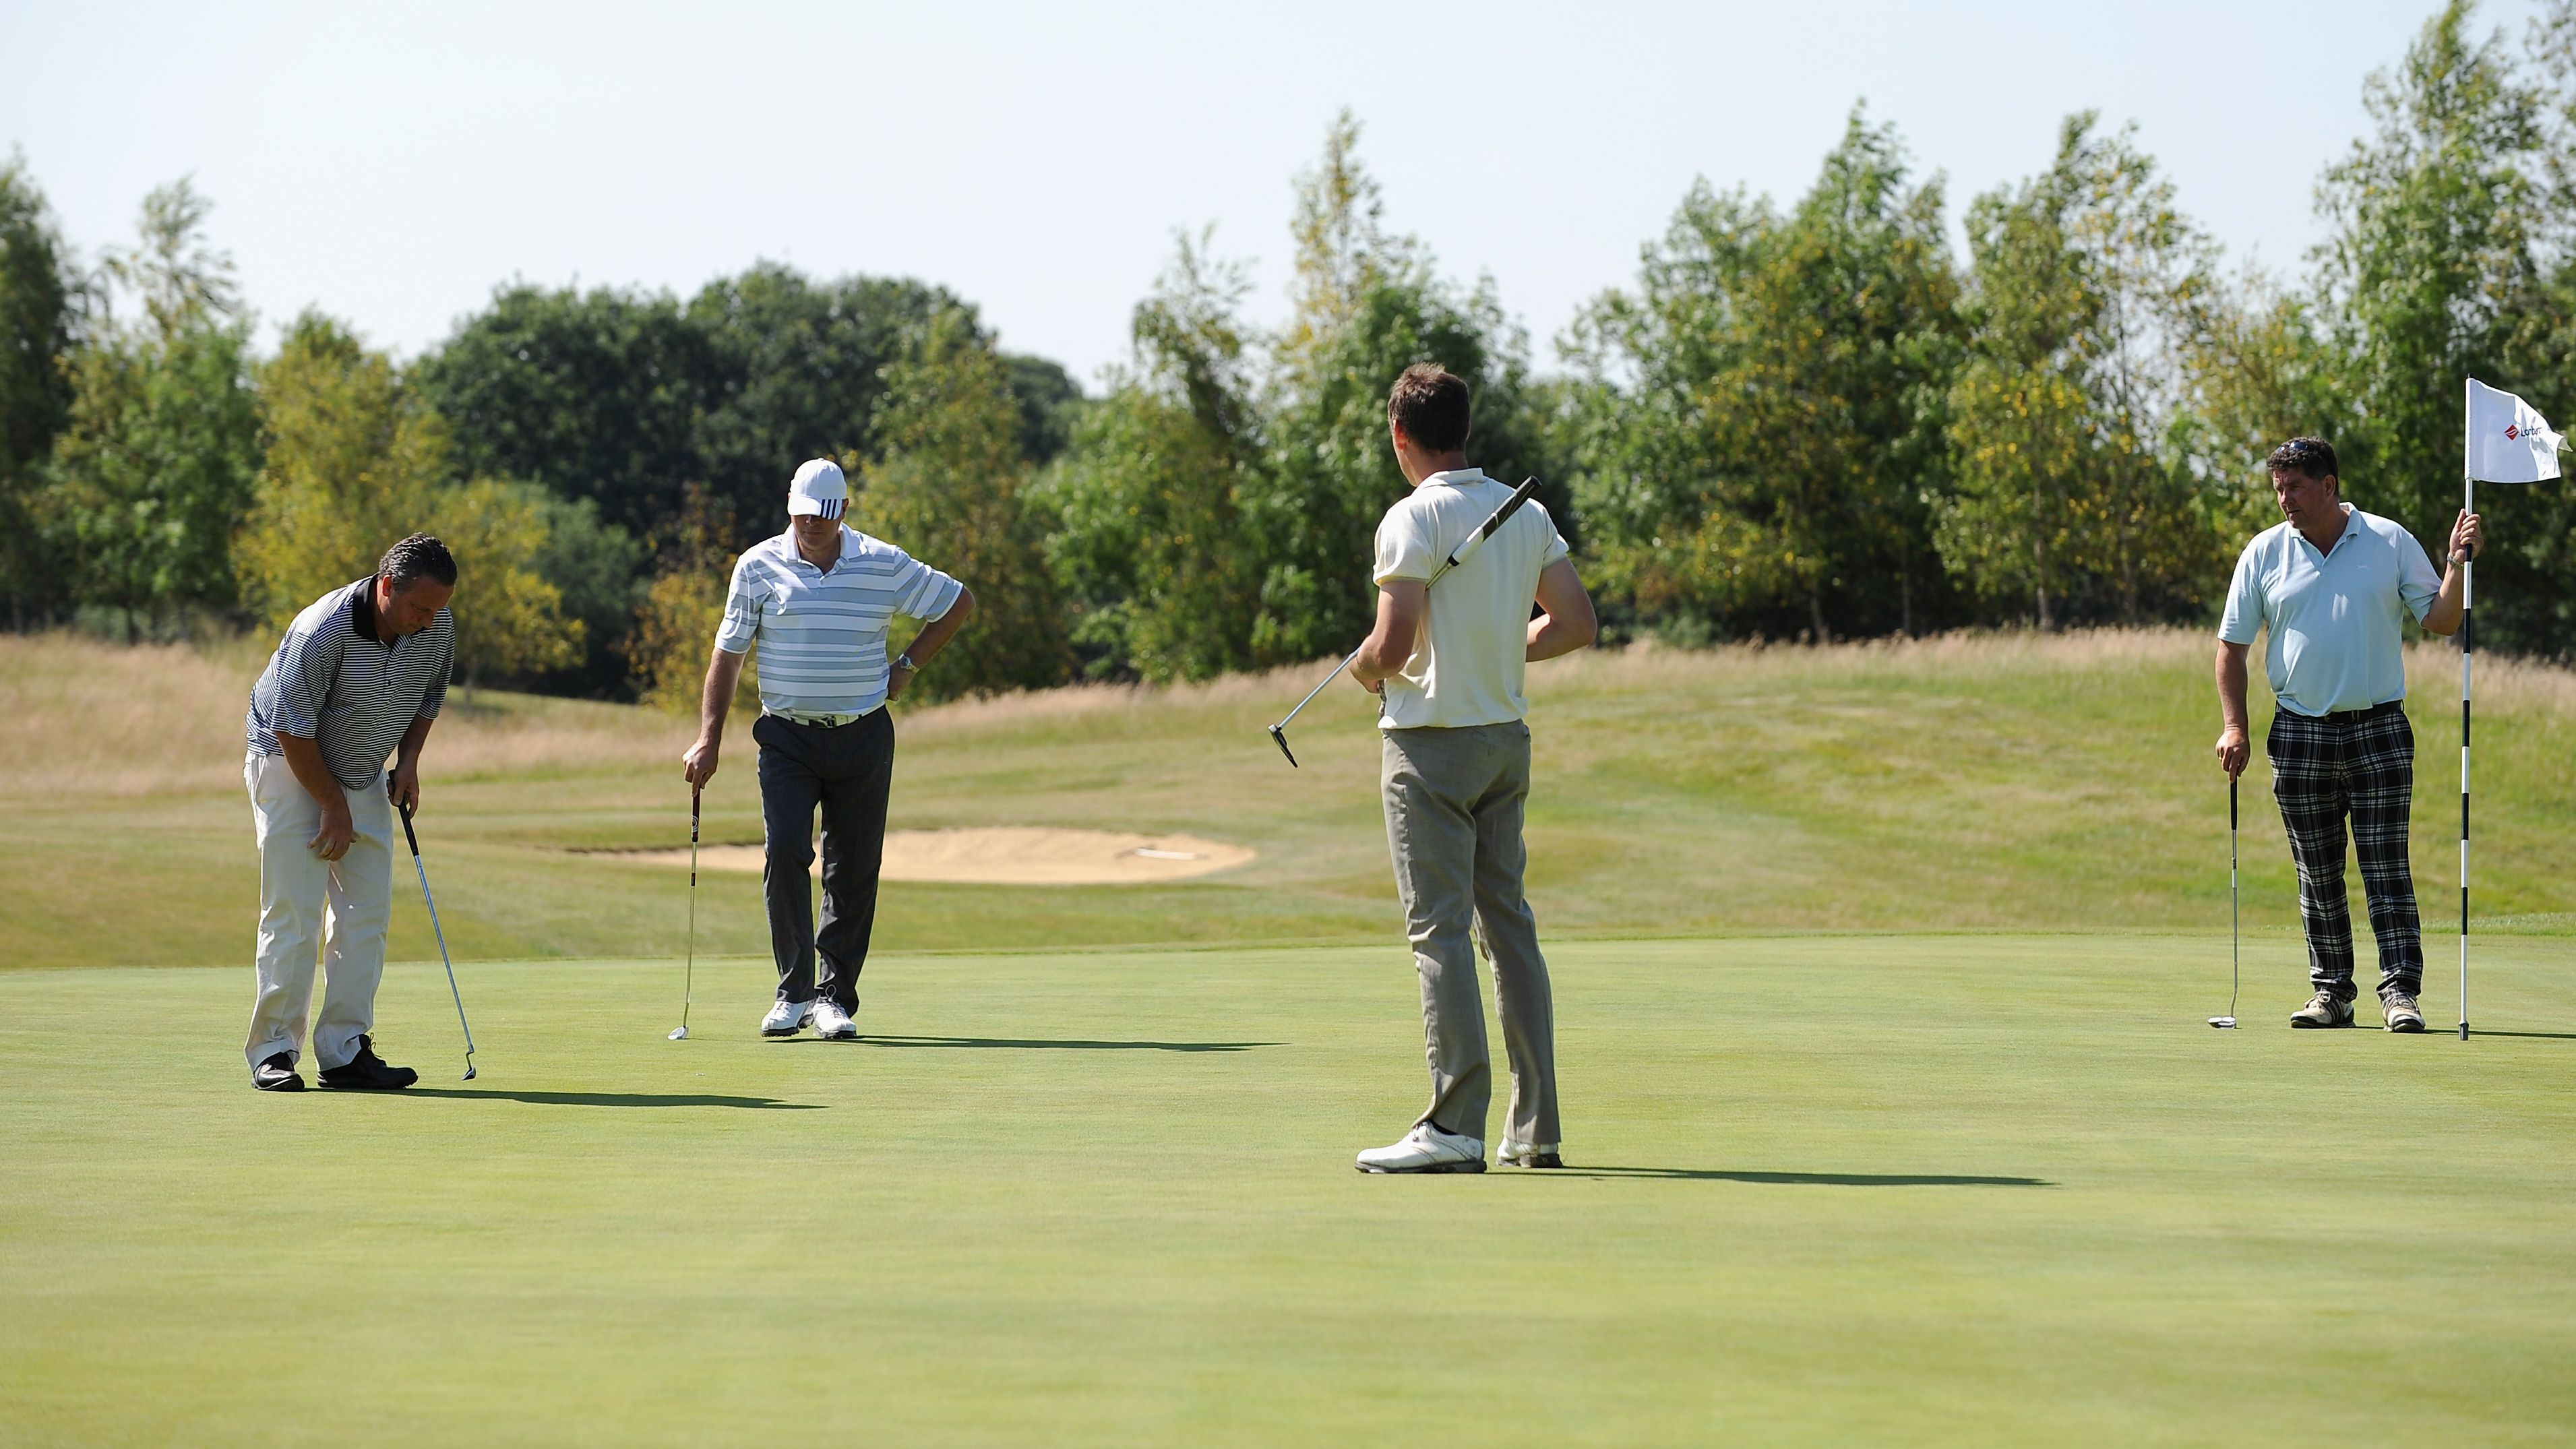 How to Determine Order of Play Around the Putting Green